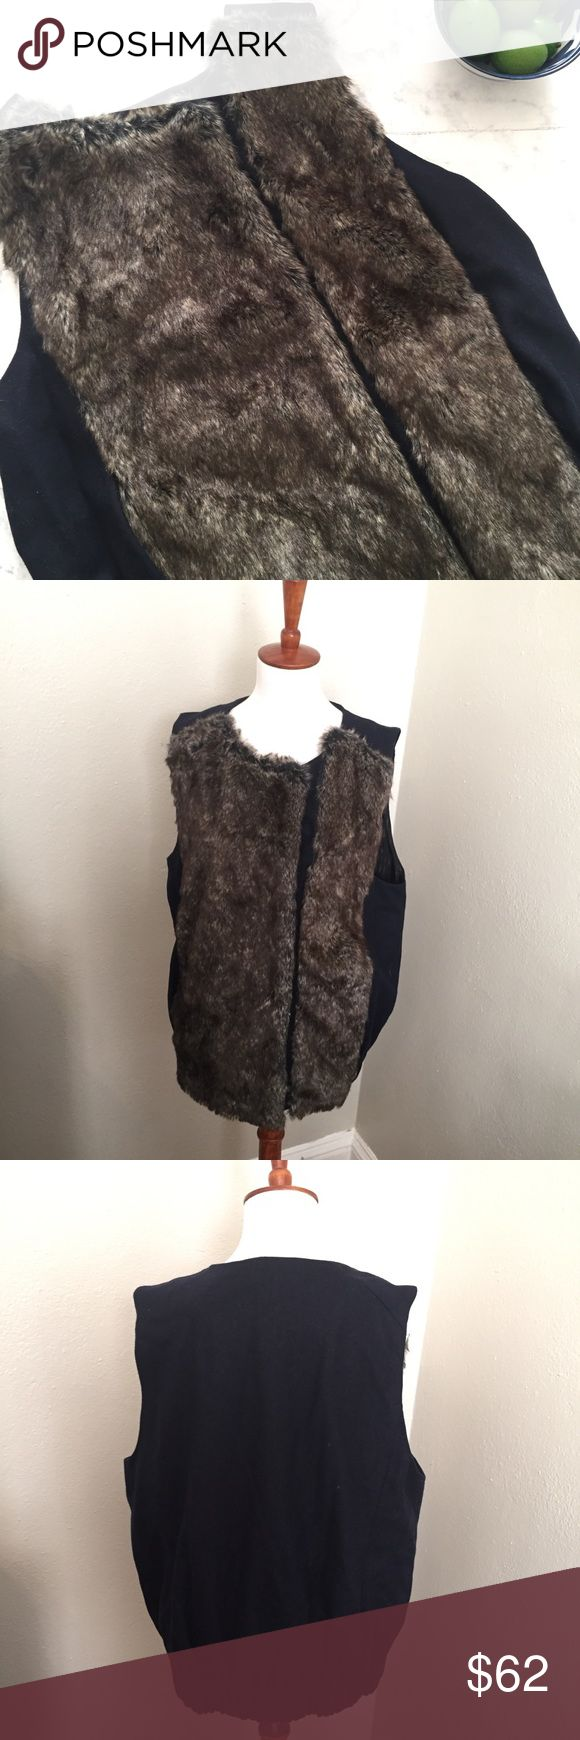 ANTHRO Elevenses Faux Fur Vest S SP Great condition; no defects. All measurements taken flat and unstretched. See photos for measurement details. Marked SP; modeled on size 2-4 mannequin. Bundle your likes and I'll send you an exclusive discount! No trades. Anthropologie Jackets & Coats Vests